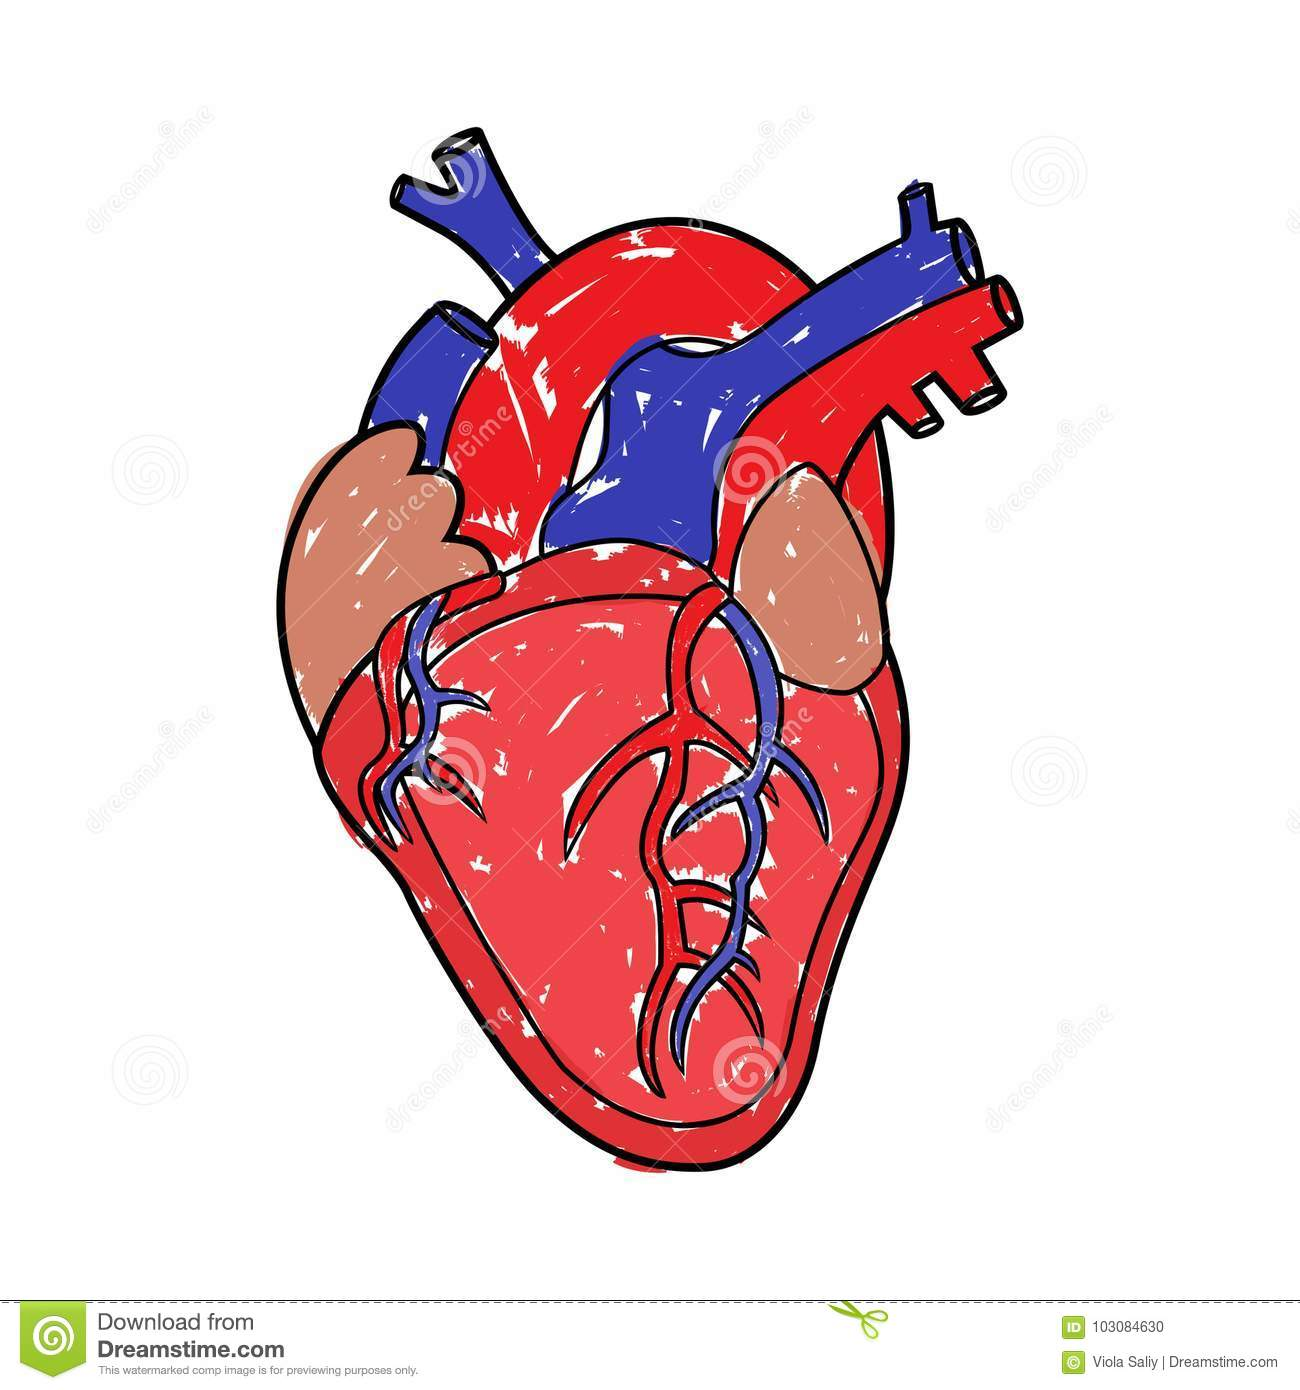 Heart Drawing human heart drawing stock vector. illustration of artistic - 103084630